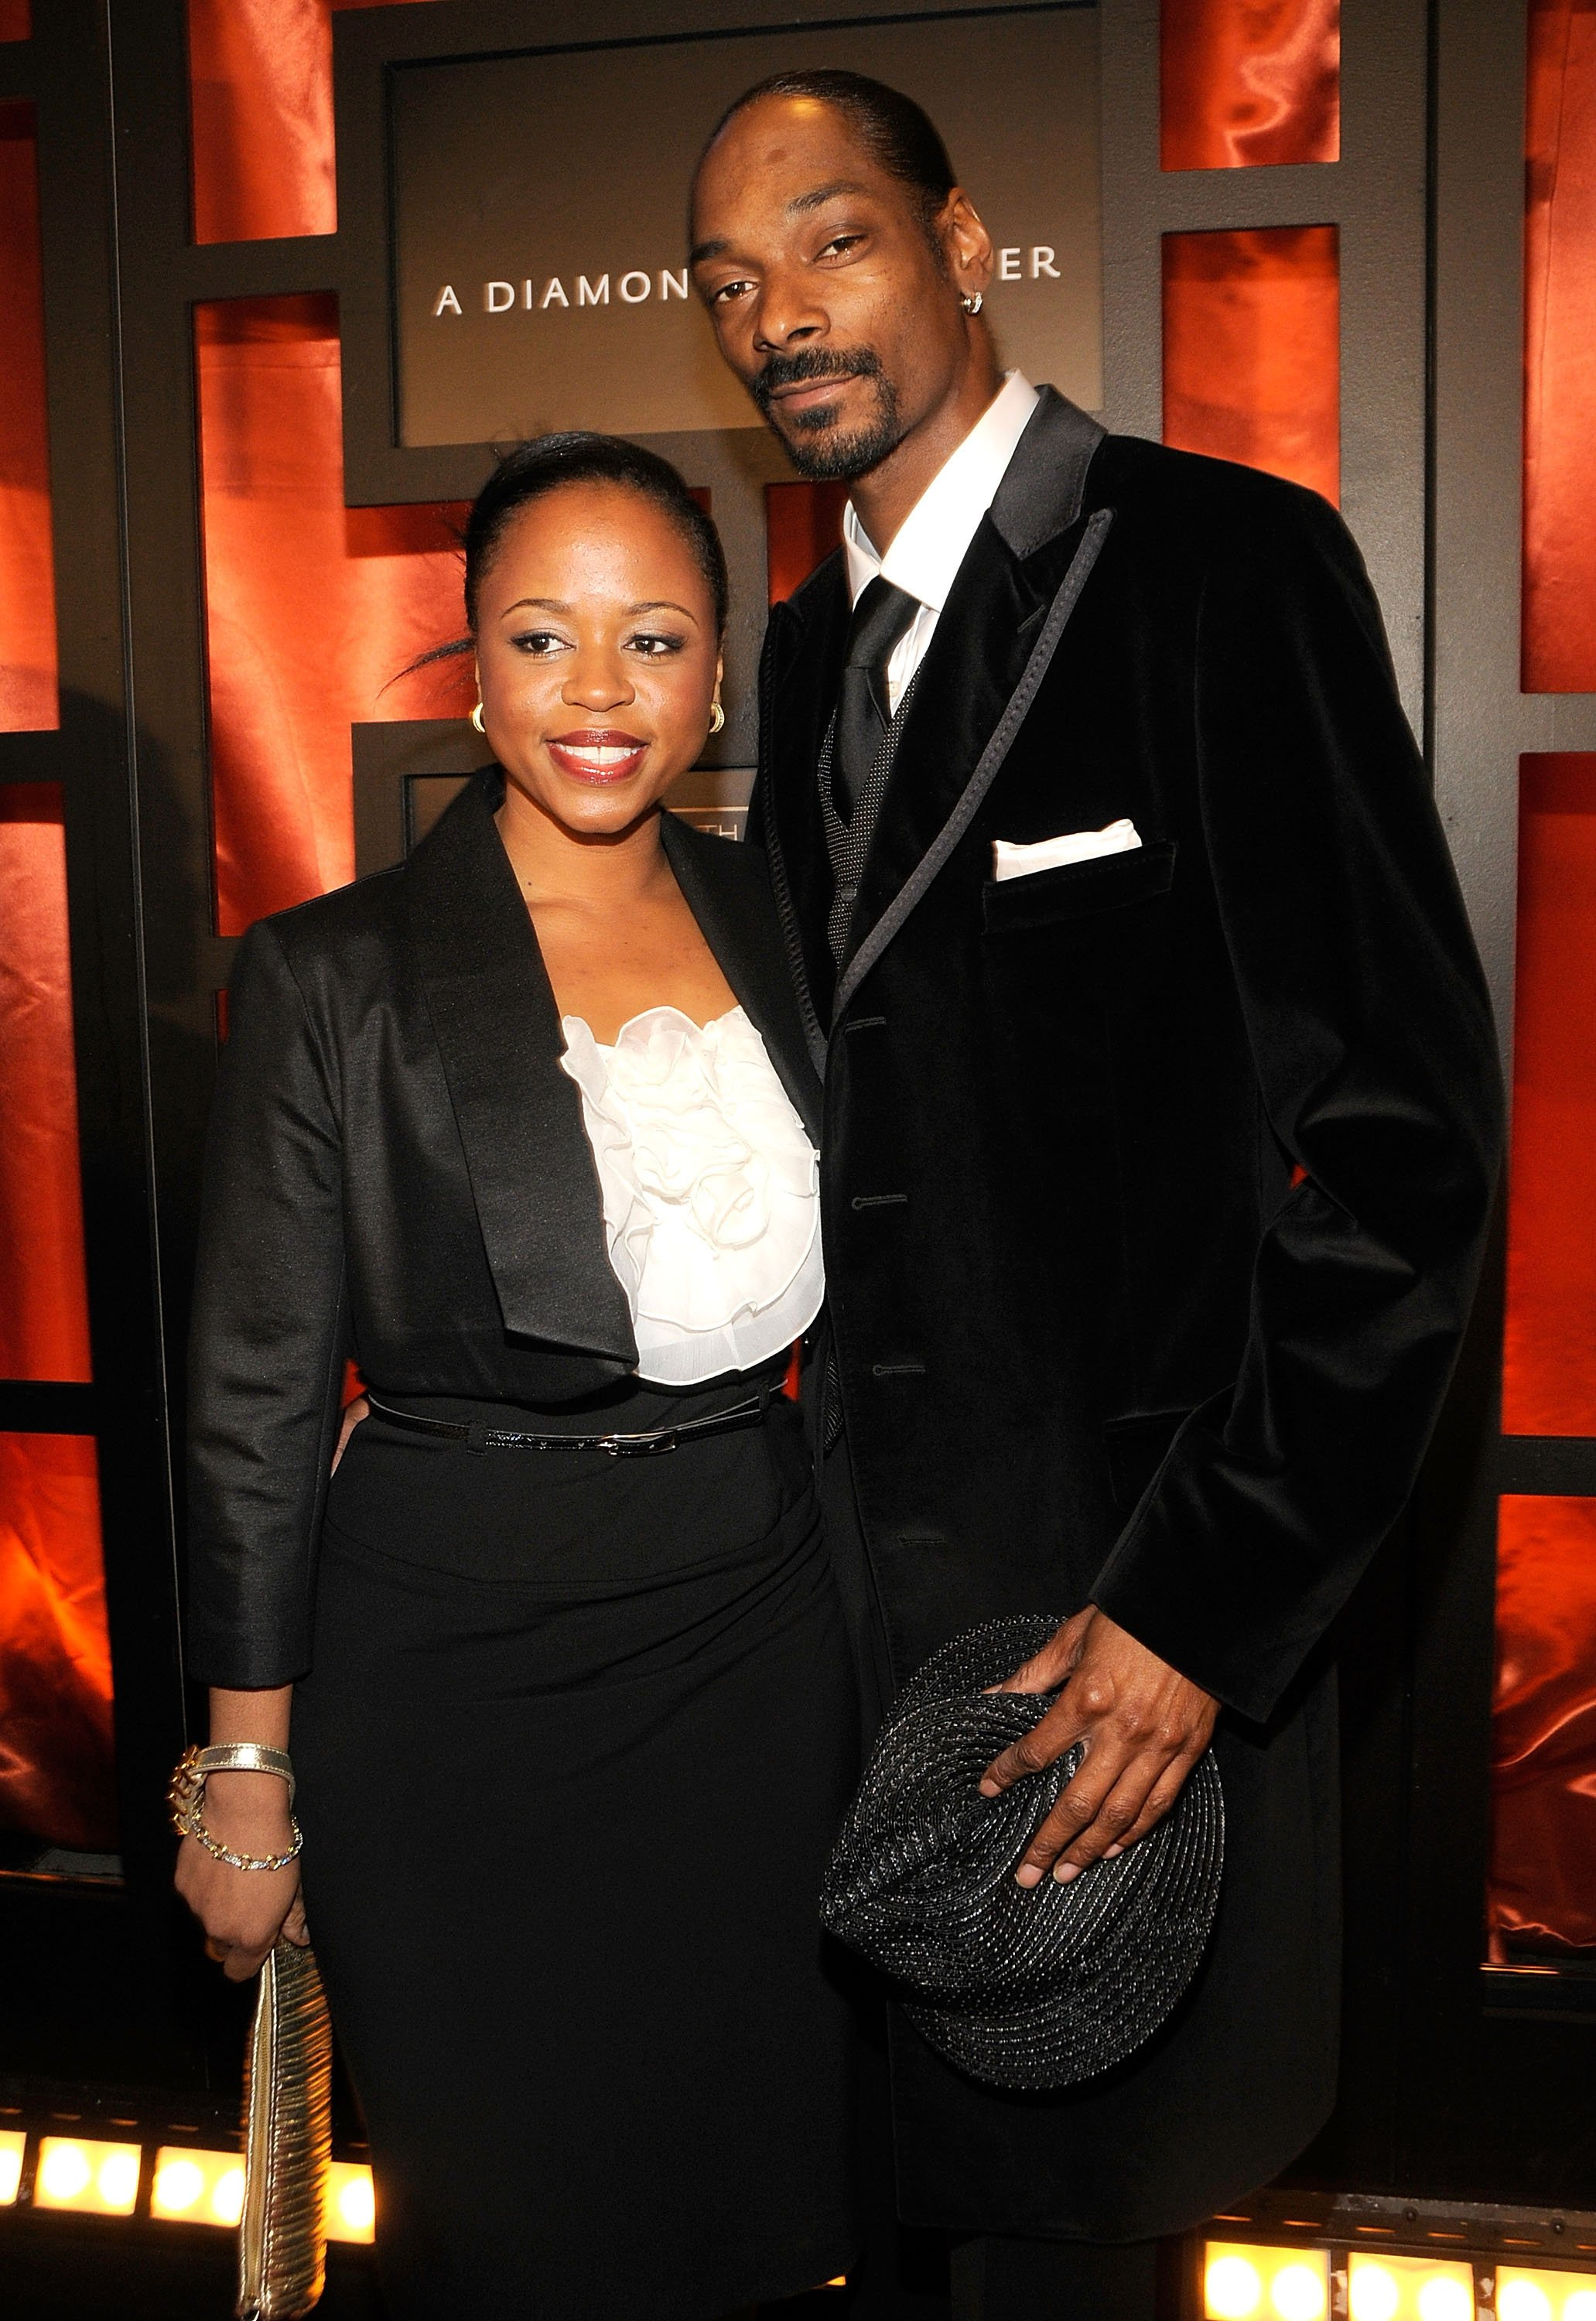 Image Credits: Getty images | Snoop Dogg married his high school sweetheart back in 1997 and have been together for 23 years!